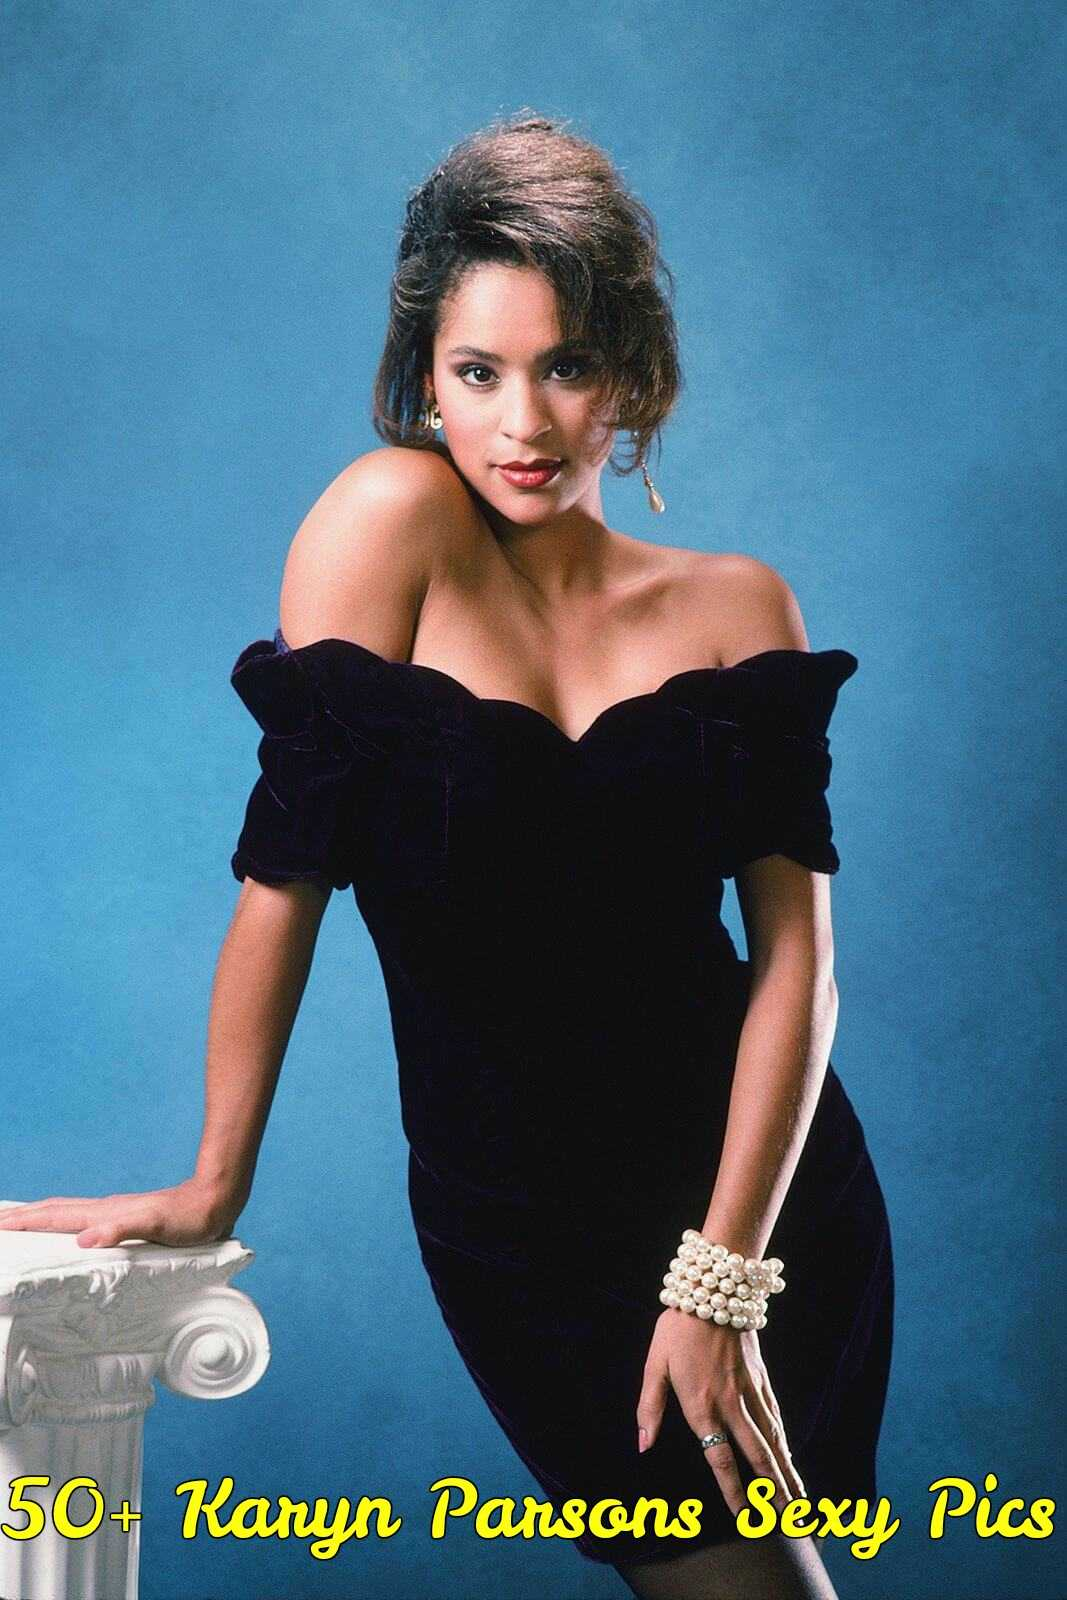 Karyn Parsons awesome